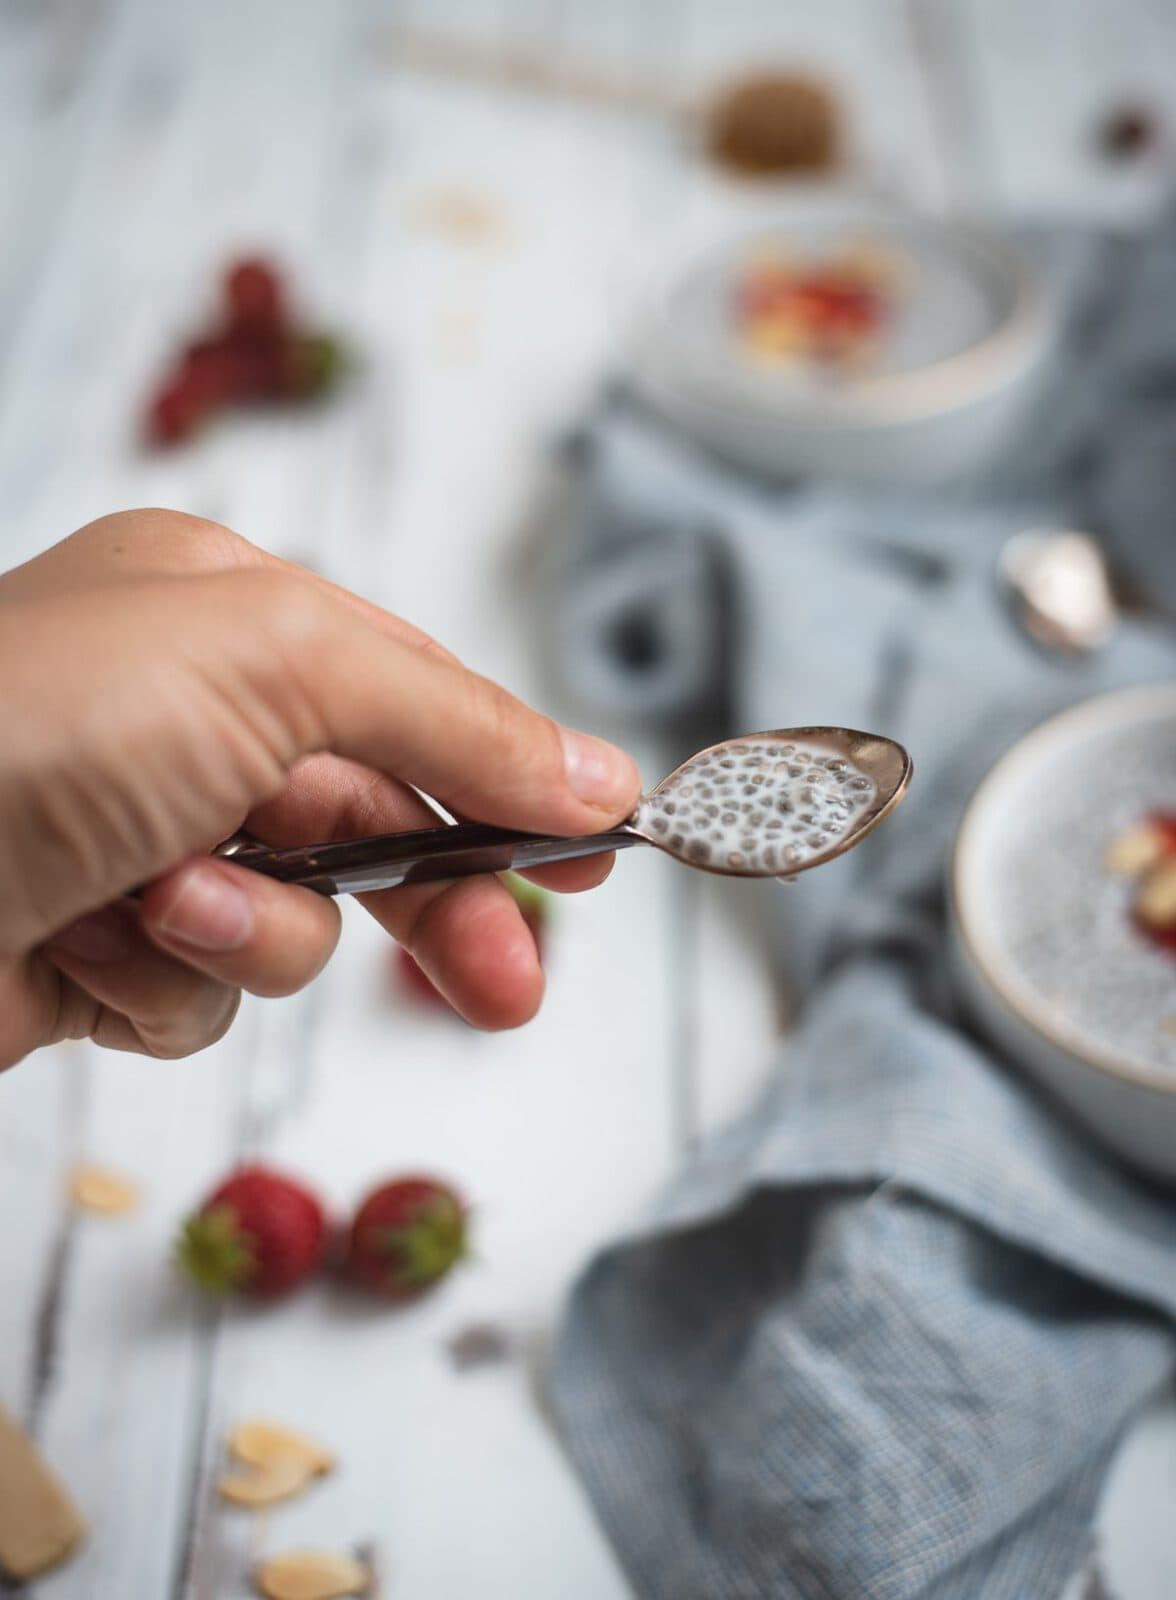 Almond chia seed pudding on a spoon held up by a hand